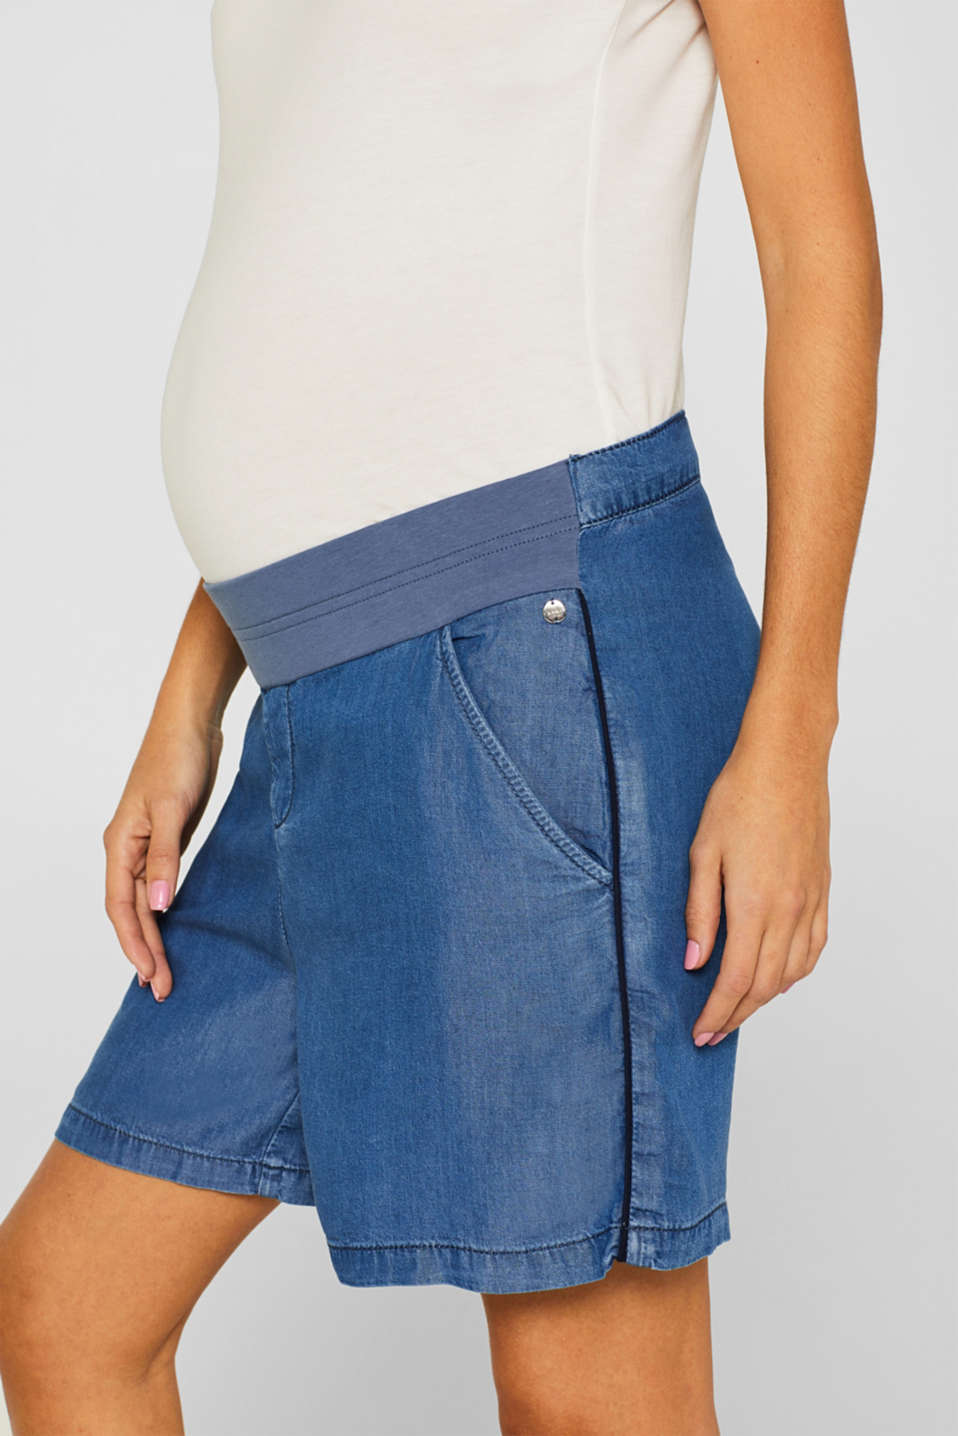 Denim-effect shorts, 100% lyocell, LCLIGHT BLUE, detail image number 2